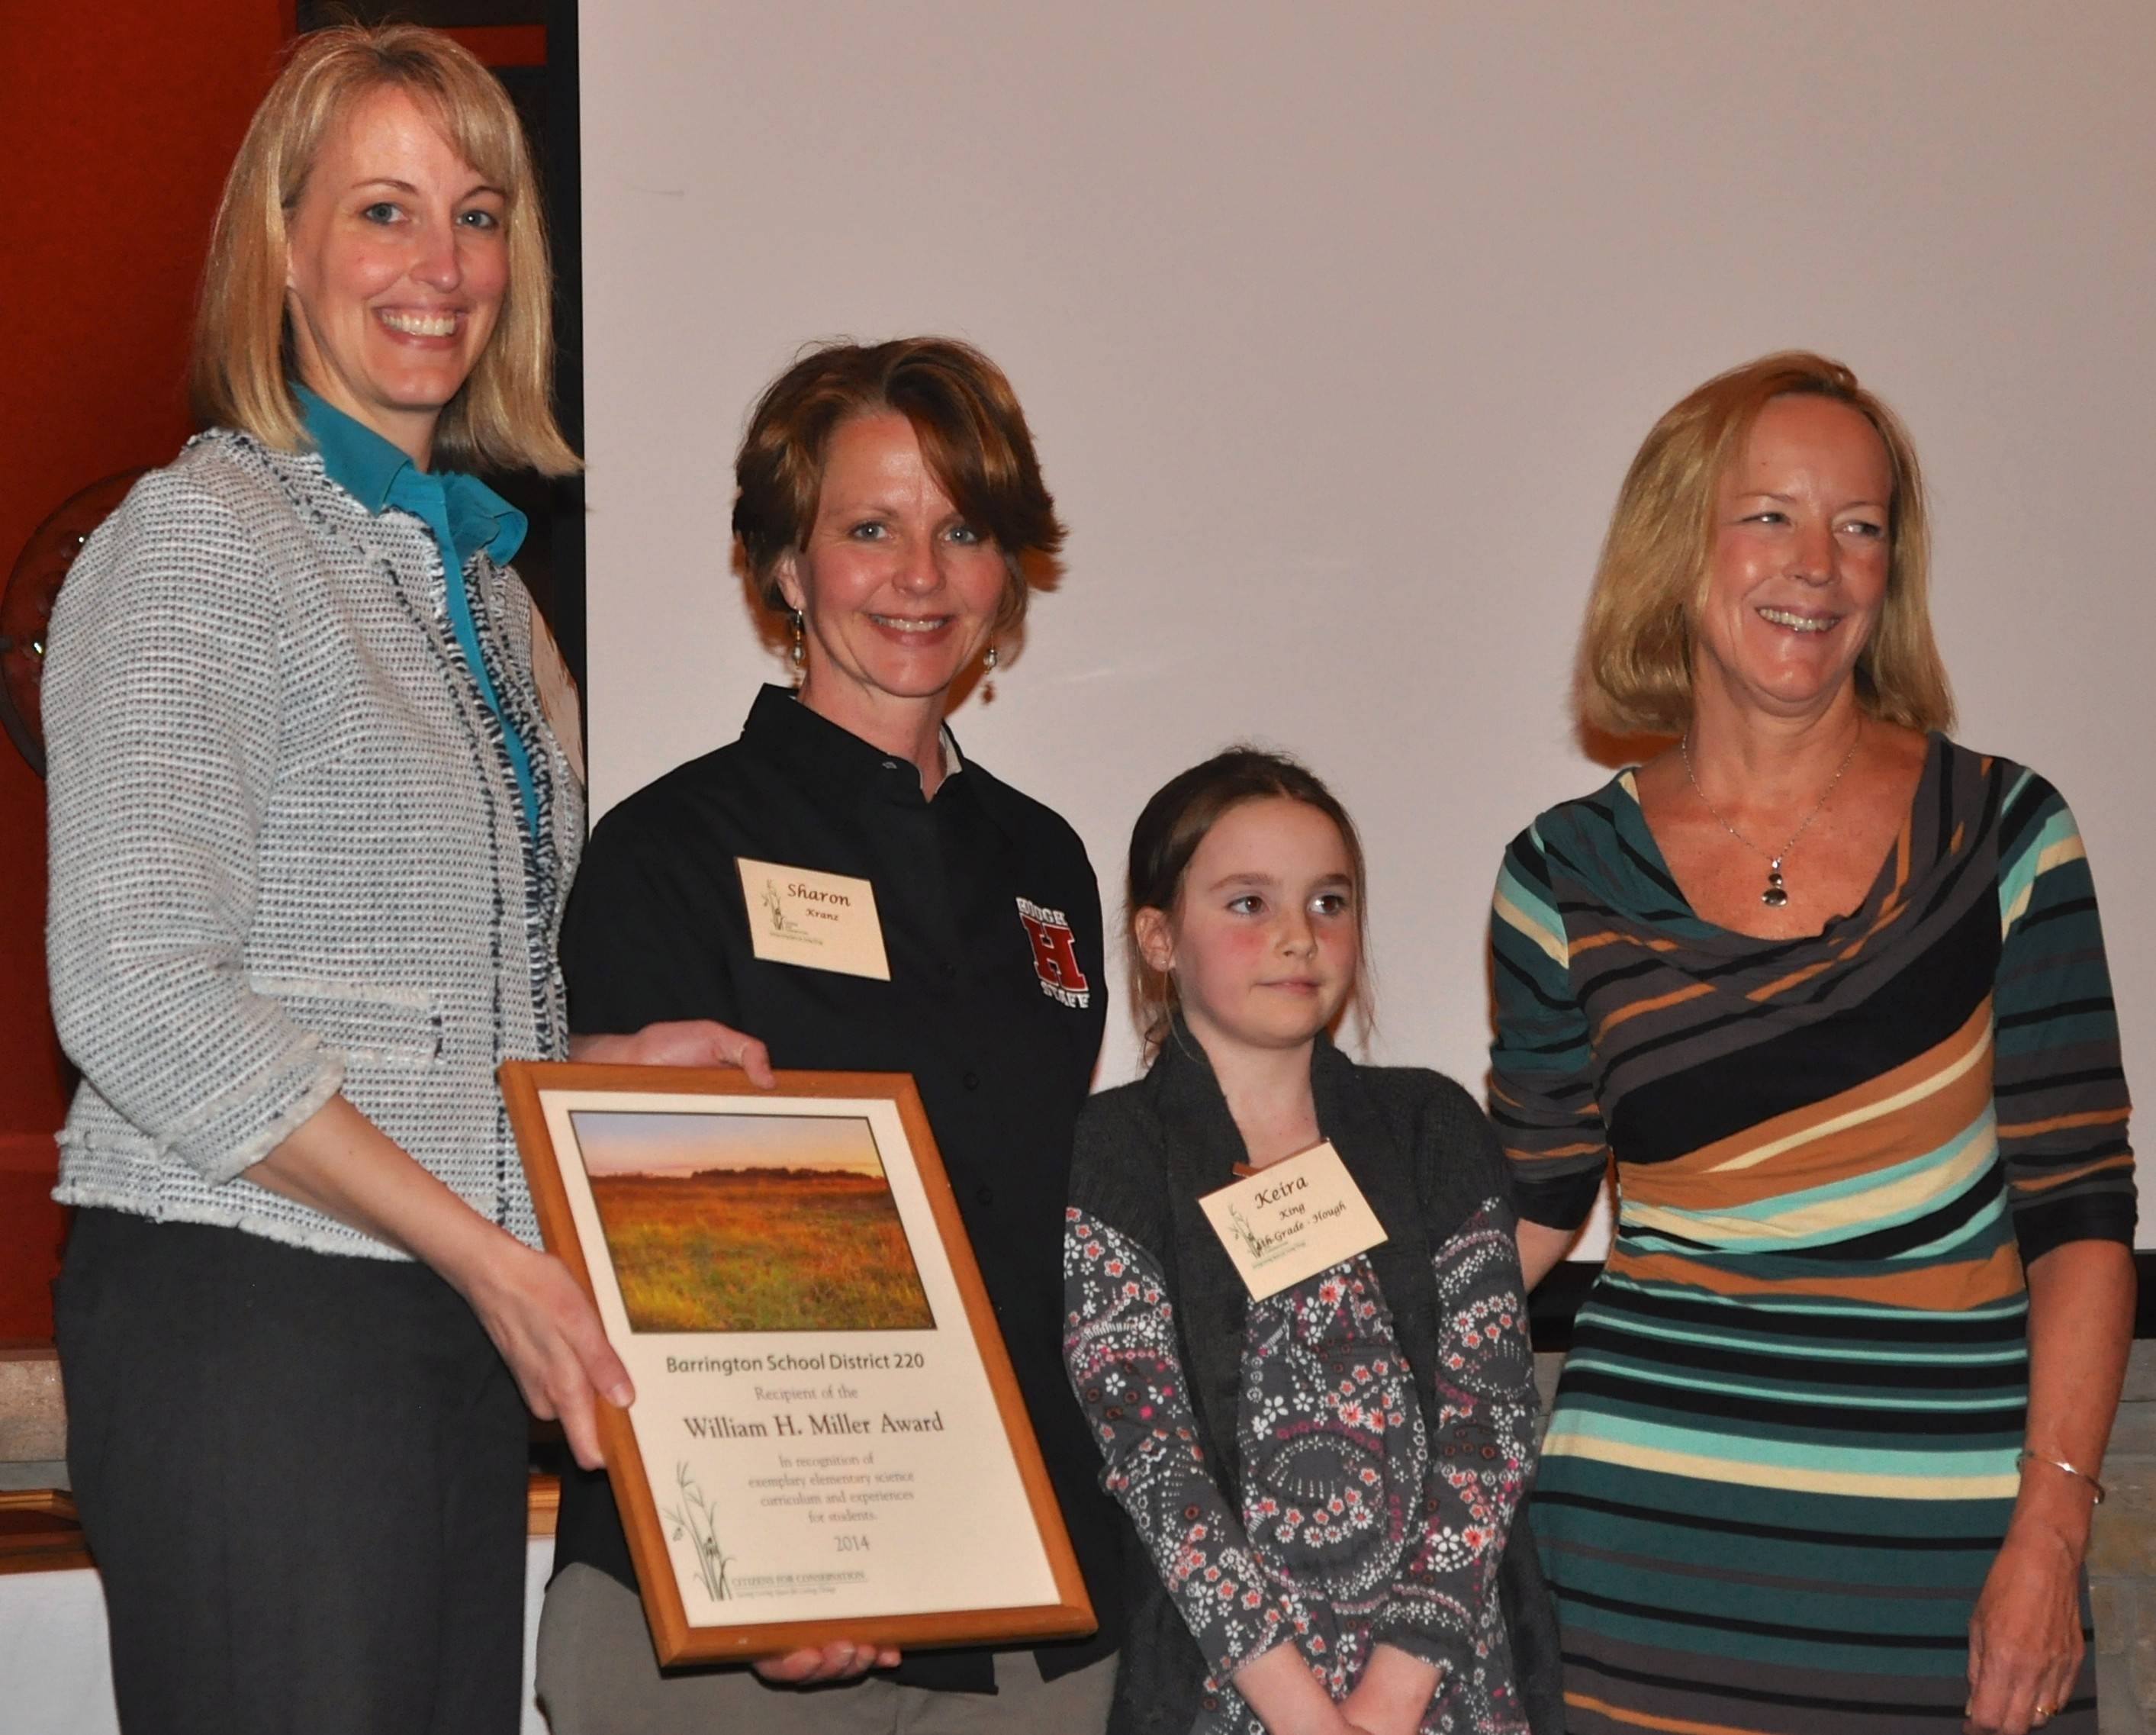 Representatives of Barrington 220 accept Citizens for Conservation's highest award, The William H. Miller Conservation Award in recognition of outstanding conservation efforts within the Barrington area. Pictured, from left, are: Dr. Becky Gill-Schultz, District 220 director of elementary curriculum; Sharon Kranz, District 220 instructional coach; Keira King, fourth grade student at Hough Street School; and Dr. Anne Grall-Reichel, the educational researcher who helped develop the program.